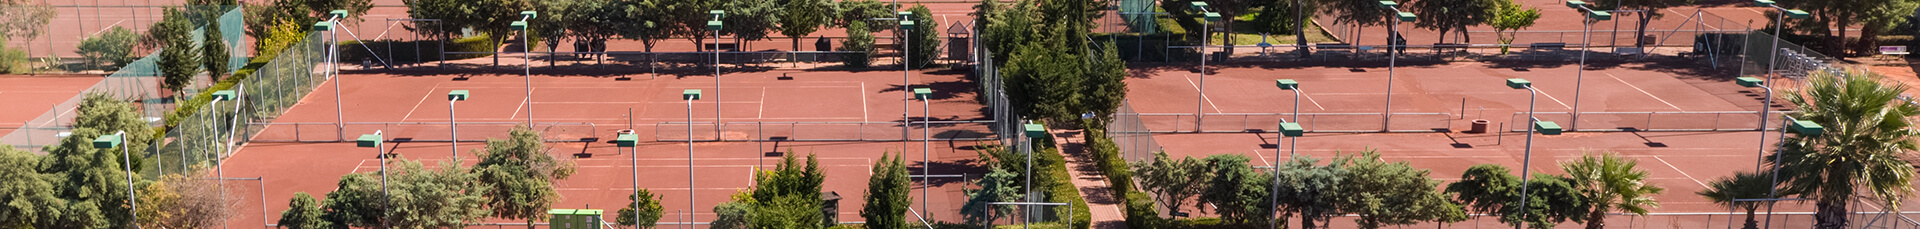 Ali Bey Club Manavgat - Tennis Courts-EN